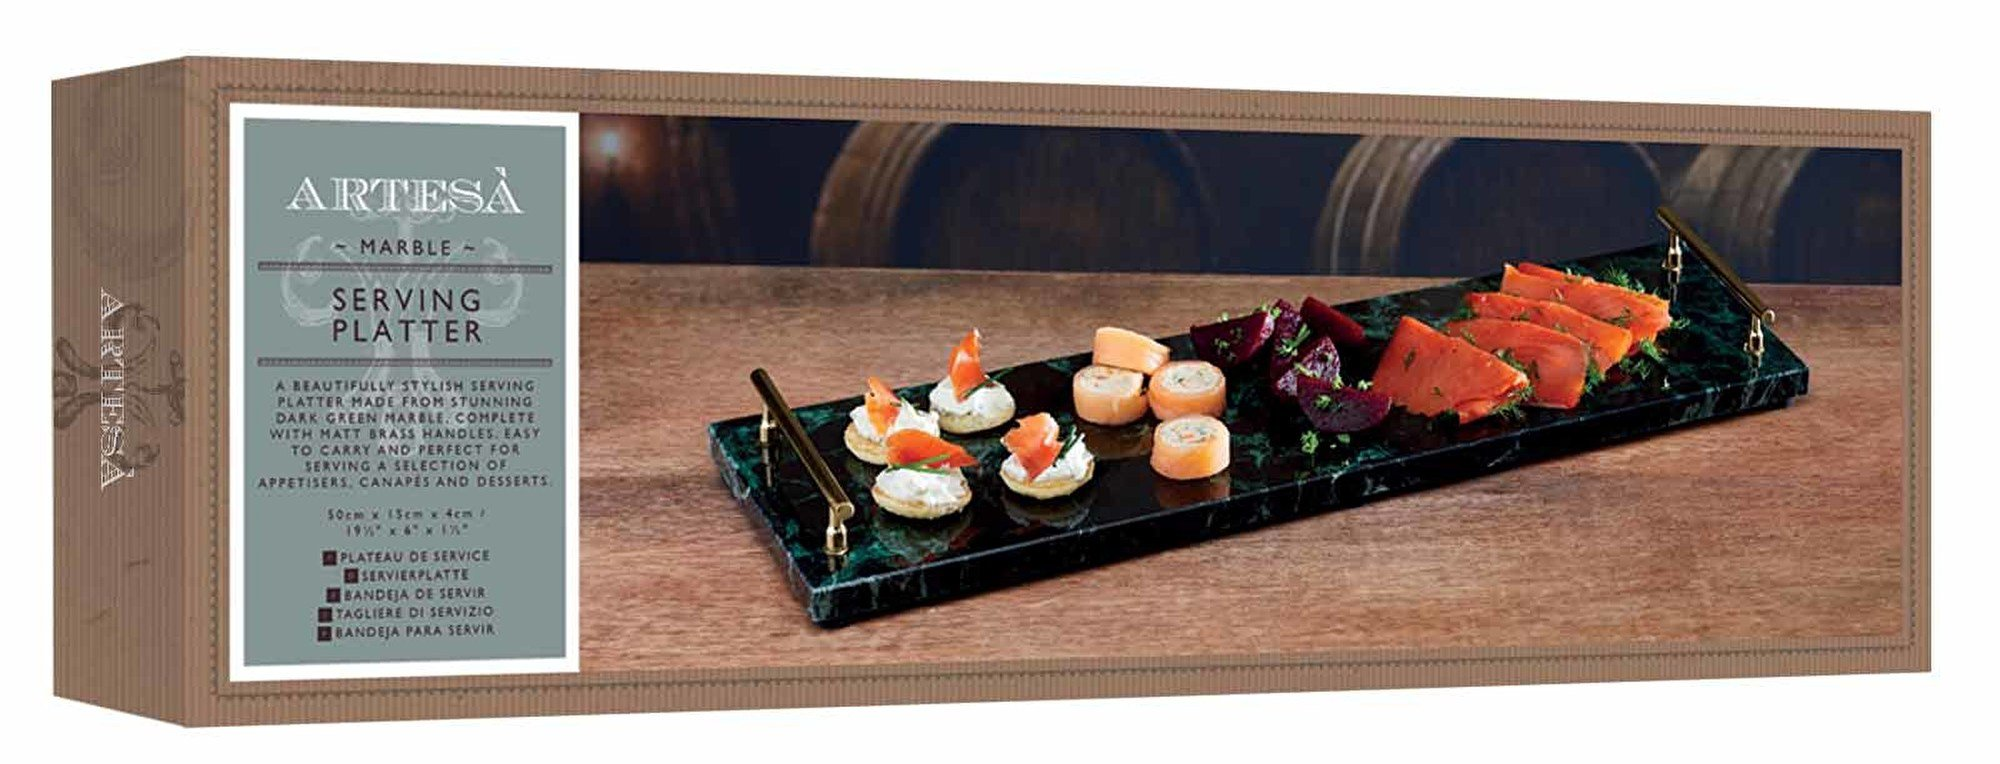 Tagliere Tiers Artesà Marble Serving Platter At Barnitts Online Store Uk Barnitts